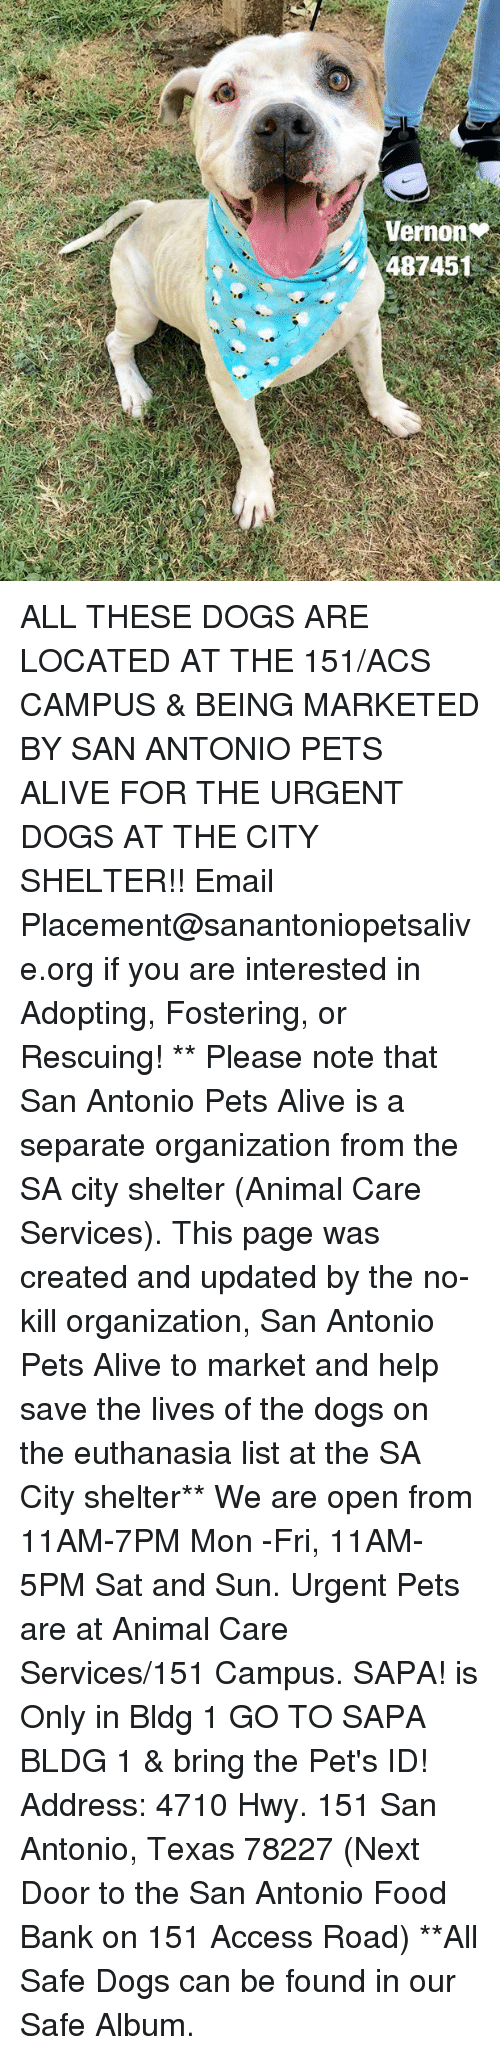 Alive, Dogs, and Food: Veron  48745 ALL THESE DOGS ARE LOCATED AT THE 151/ACS CAMPUS & BEING MARKETED BY SAN ANTONIO PETS ALIVE FOR THE URGENT DOGS AT THE CITY SHELTER!!  Email Placement@sanantoniopetsalive.org if you are interested in Adopting, Fostering, or Rescuing!                                                                                                                                                                                                                                                                                                                                                             ** Please note that San Antonio Pets Alive is a separate organization from the SA city shelter (Animal Care Services). This page was created and updated by the no-kill organization, San Antonio Pets Alive to market and help save the lives of the dogs on the euthanasia list at the SA City shelter**  We are open from 11AM-7PM Mon -Fri, 11AM-5PM Sat and Sun. Urgent Pets are at Animal Care Services/151 Campus. SAPA! is Only in Bldg 1 GO TO SAPA BLDG 1 & bring the Pet's ID! Address: 4710 Hwy. 151 San Antonio, Texas 78227 (Next Door to the San Antonio Food Bank on 151 Access Road) **All Safe Dogs can be found in our Safe Album.